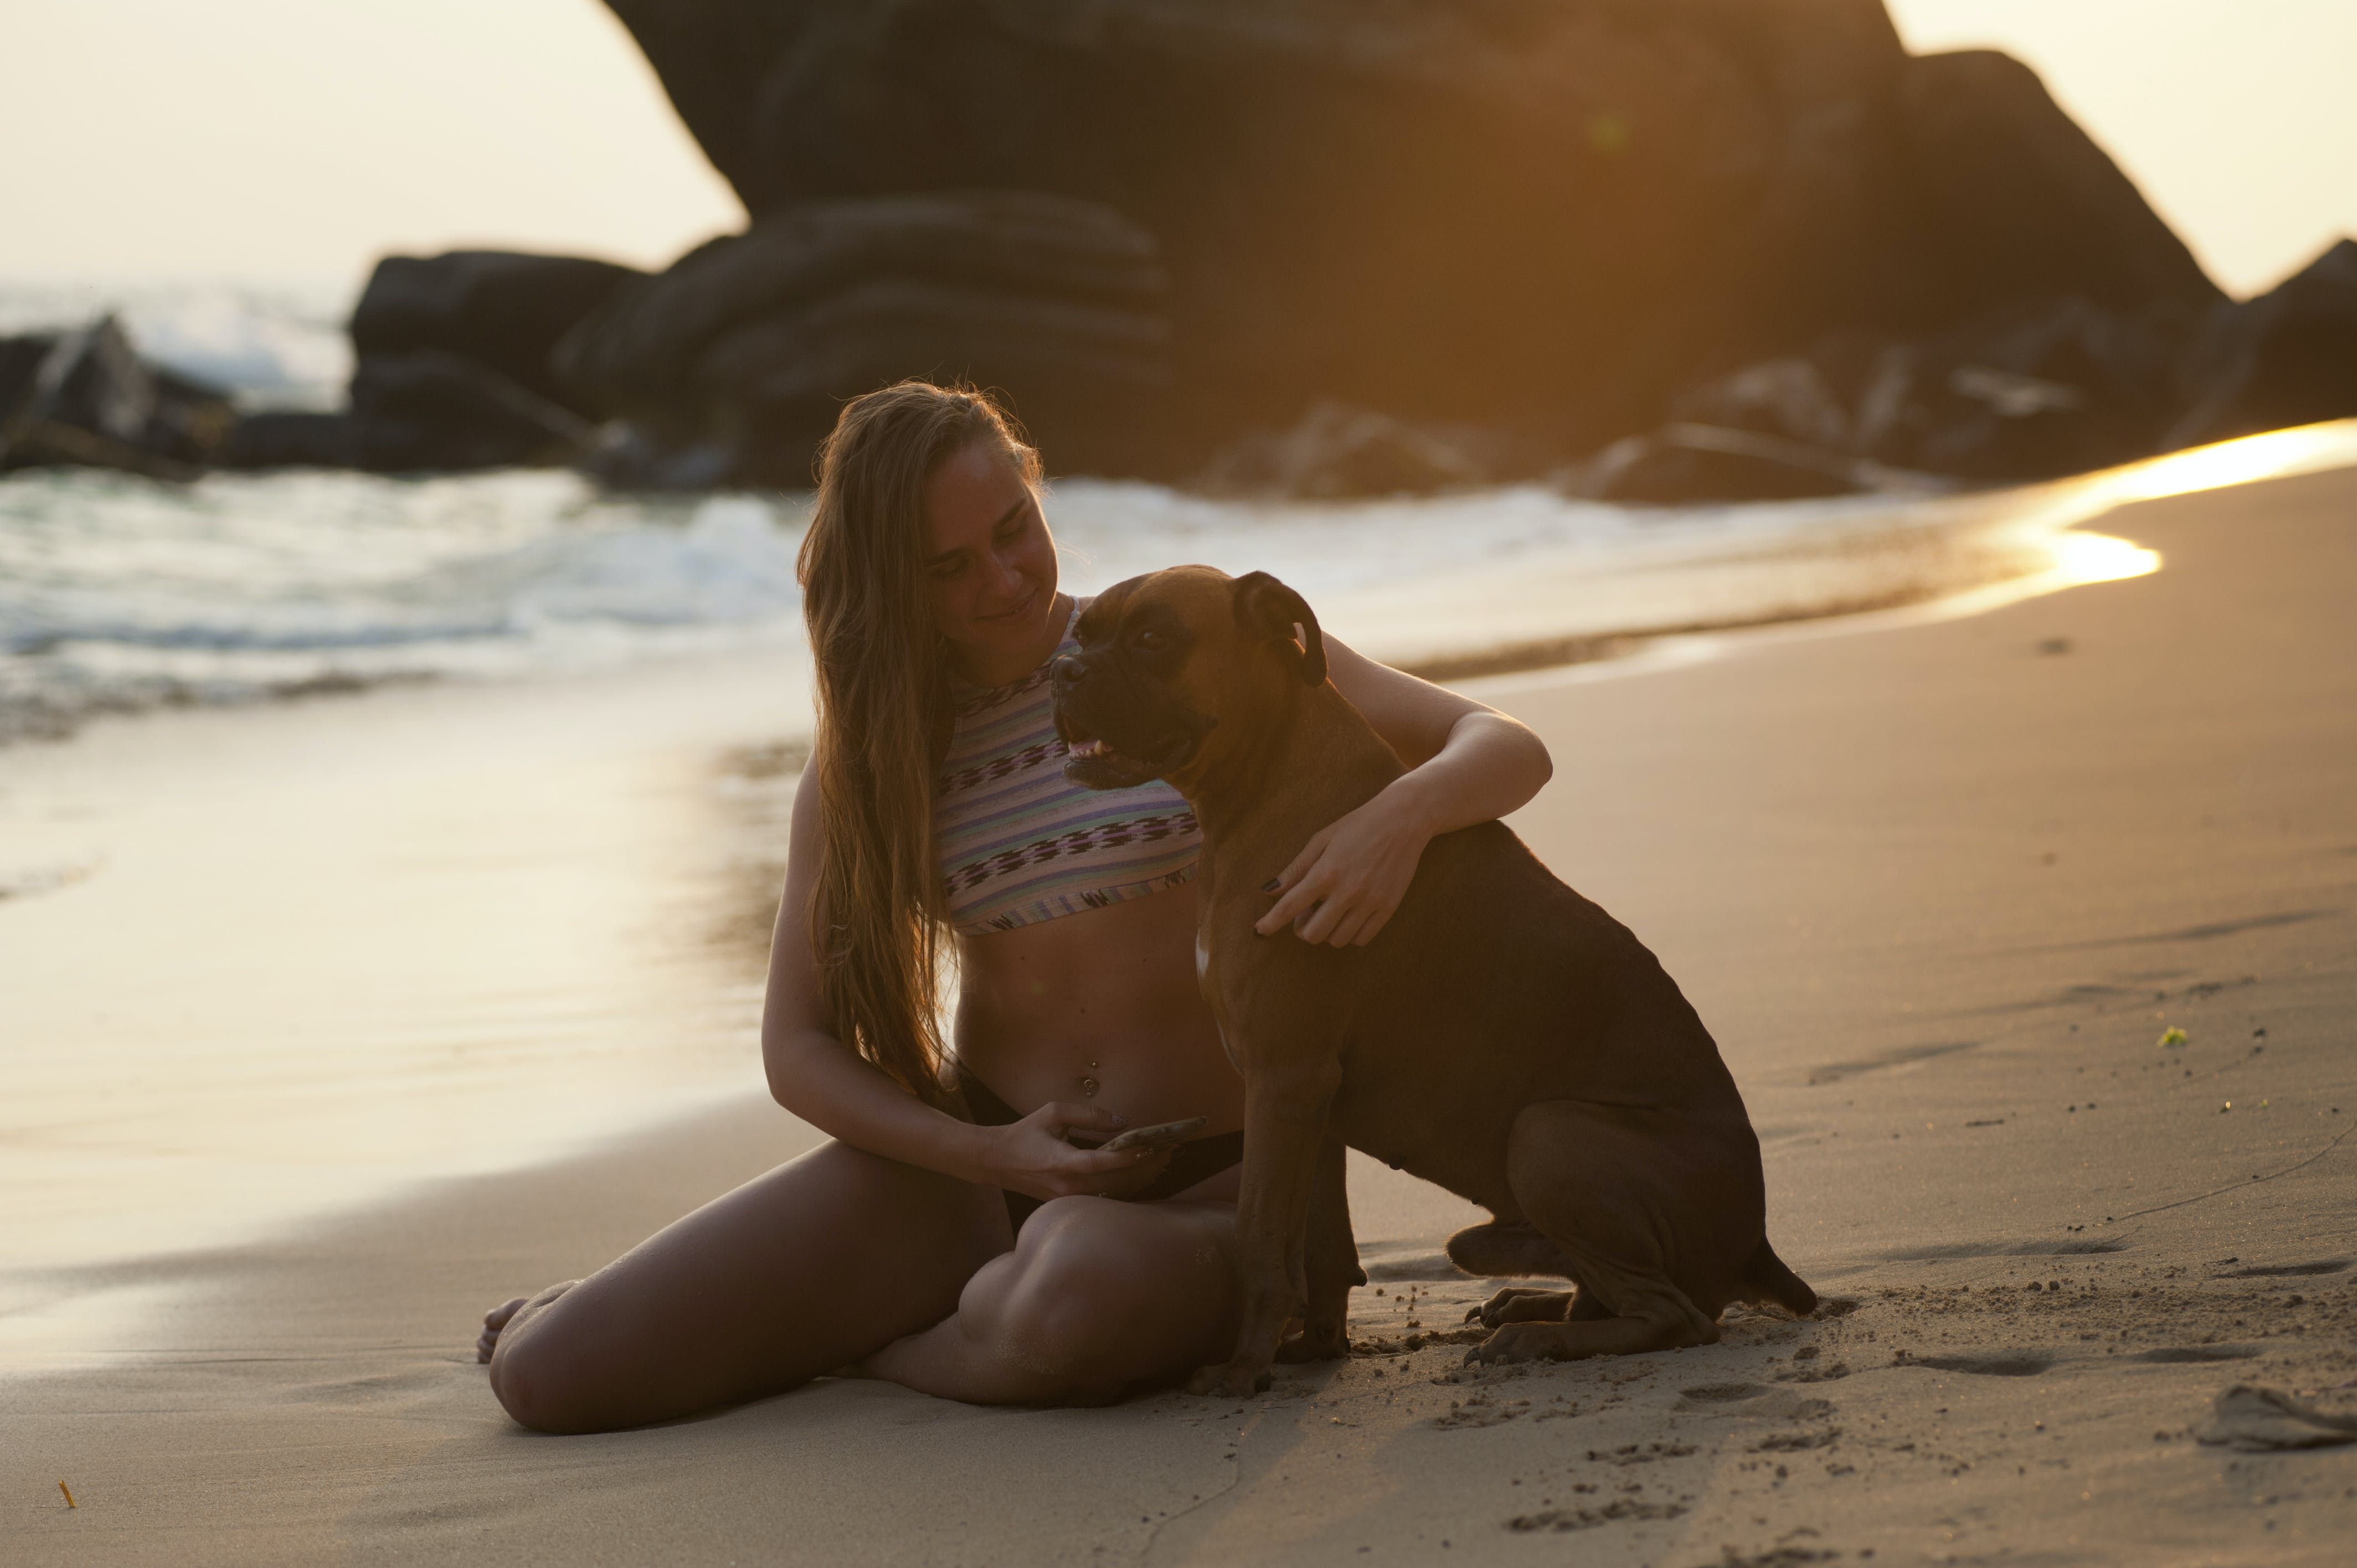 Woman Holding Boxer Dog on Beach Shore